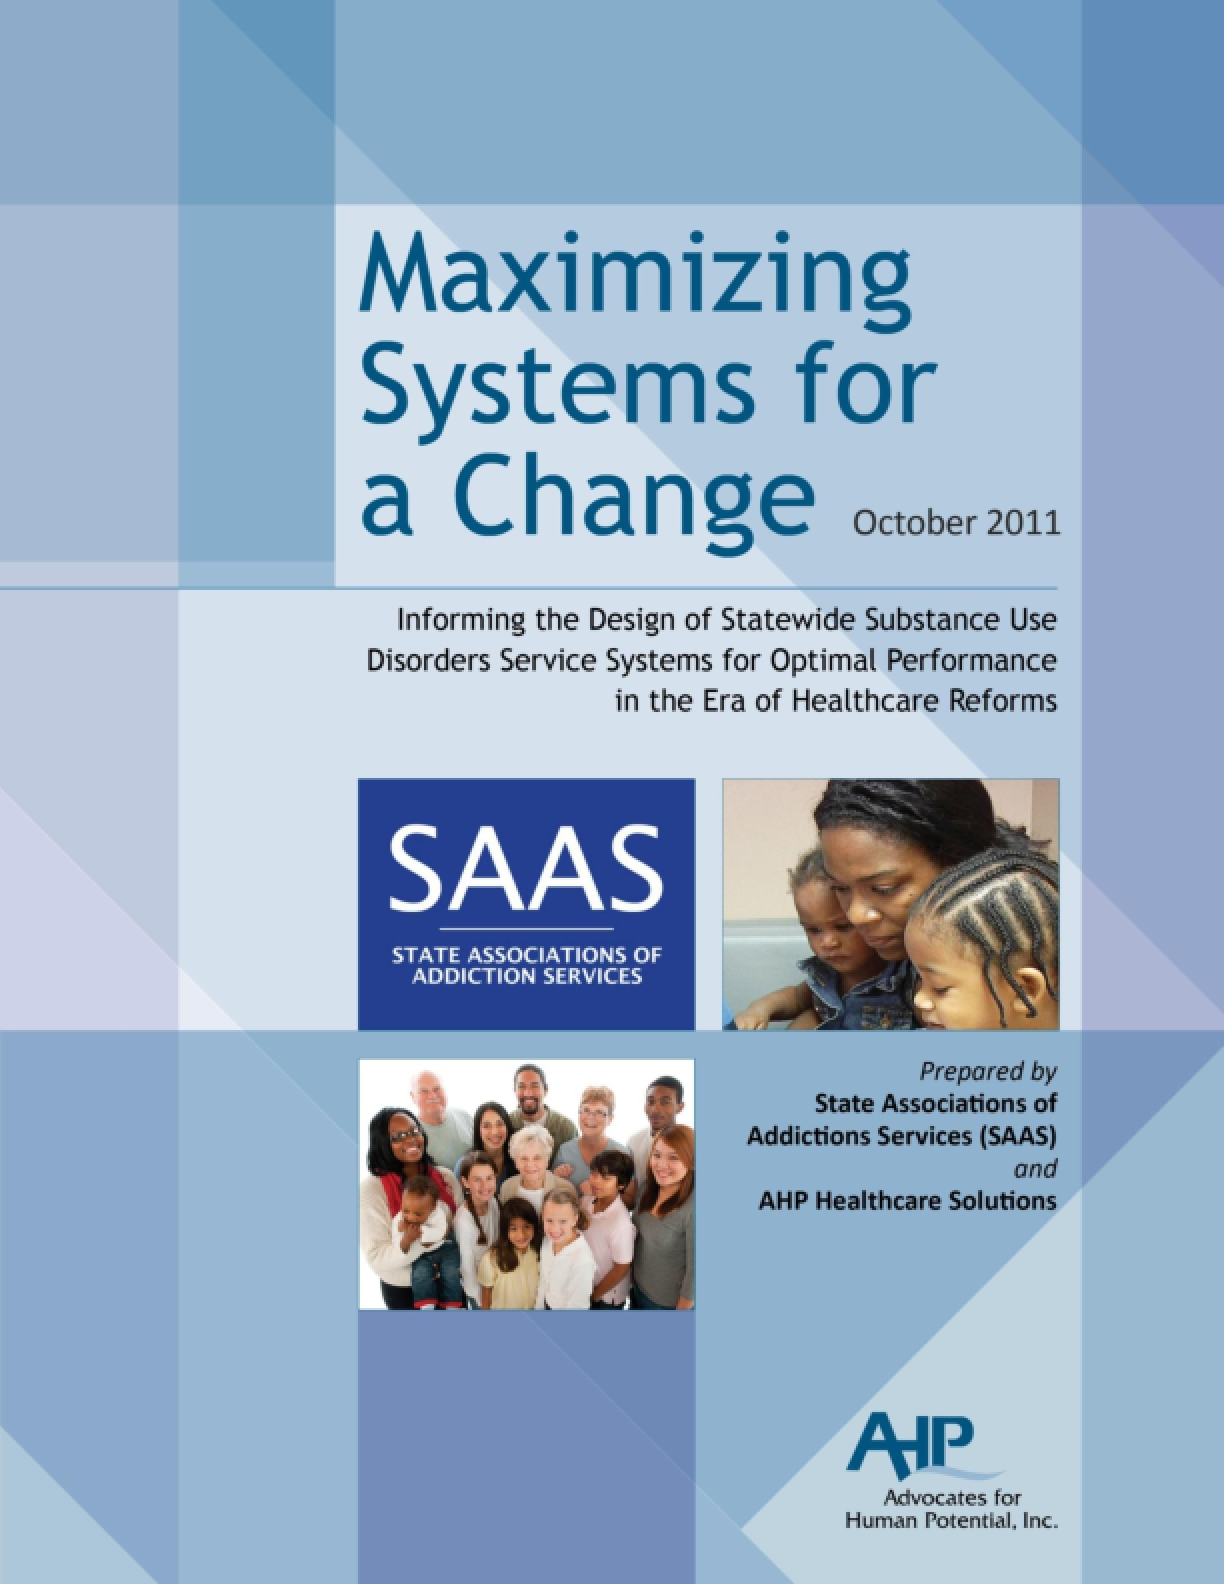 Maximizing Systems for Change